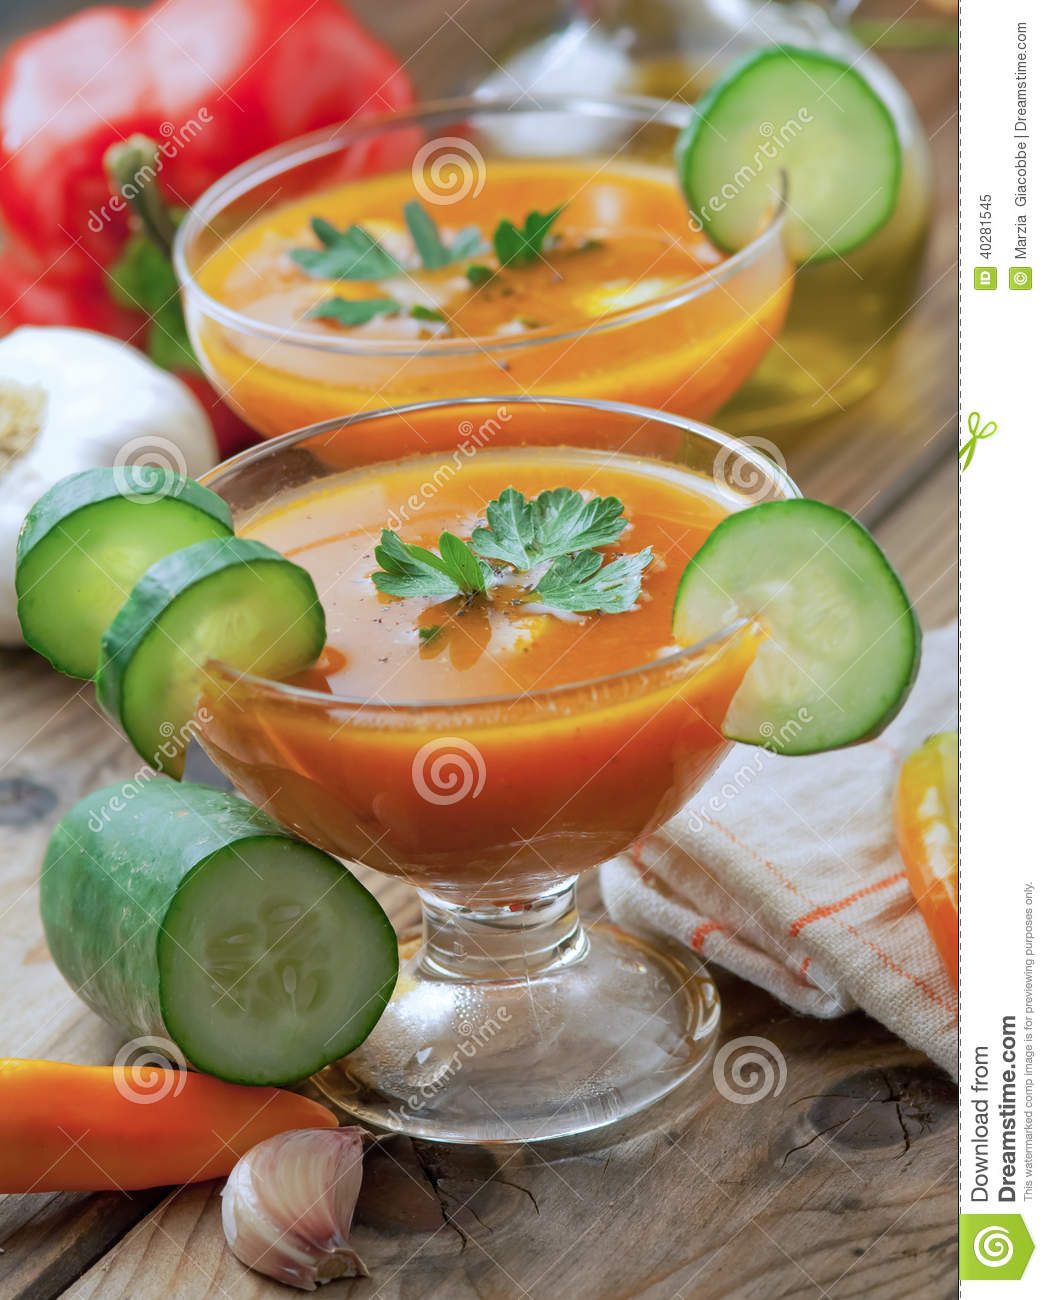 Gazpacho Stock Photo - Image: 40281545